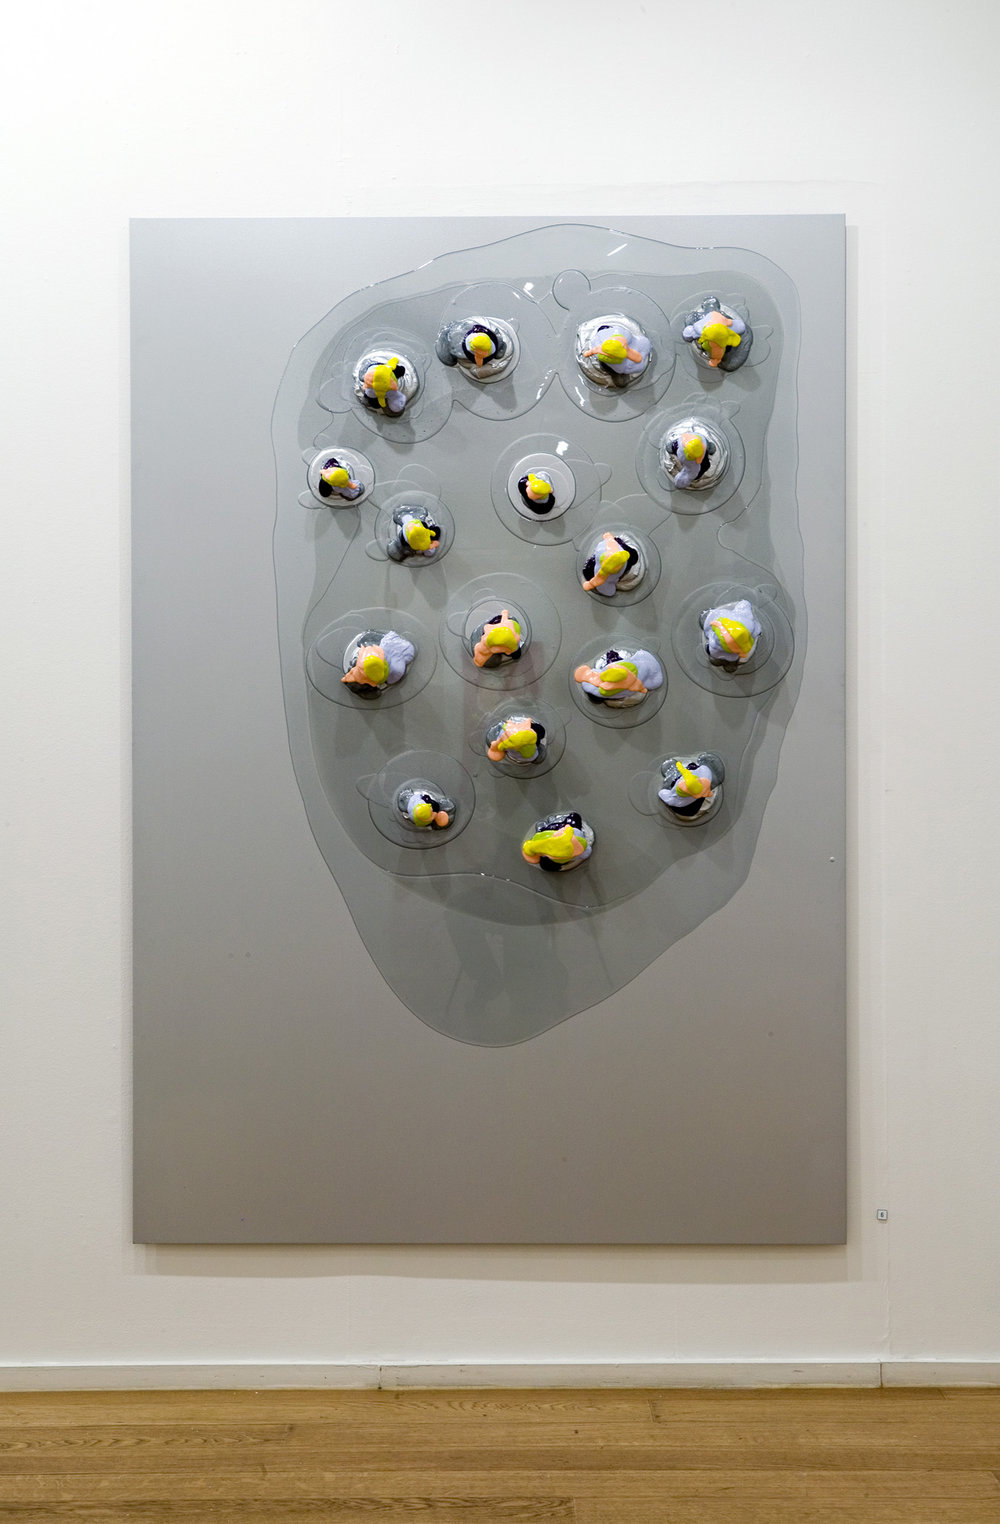 Smack . 2005. Lacquer and epoxy on aluminium. 180 x 125 cm.